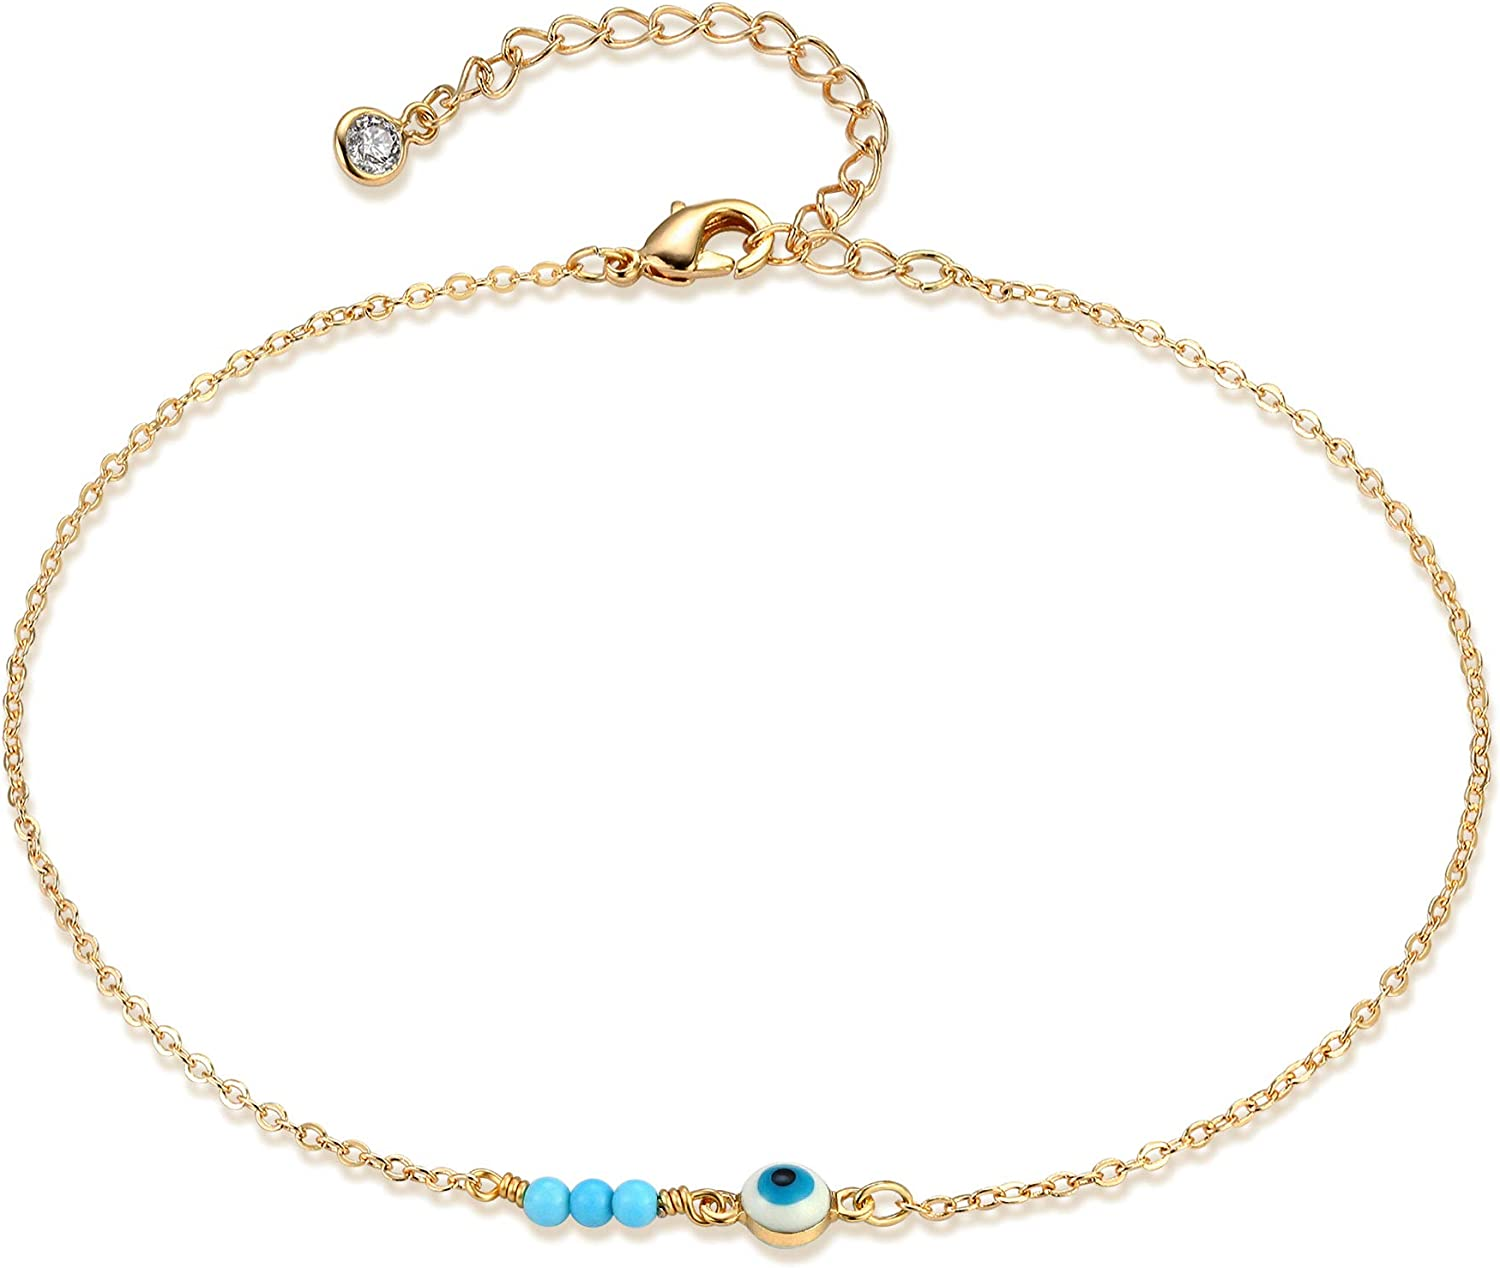 Mevecco Pearl Anklet Handmade 18k Gold Plated Dainty Boho Beach Cute Ankle Bracelet Adjustable Wafer Layered Turquoises Dangle Coins Foot Chain for Women